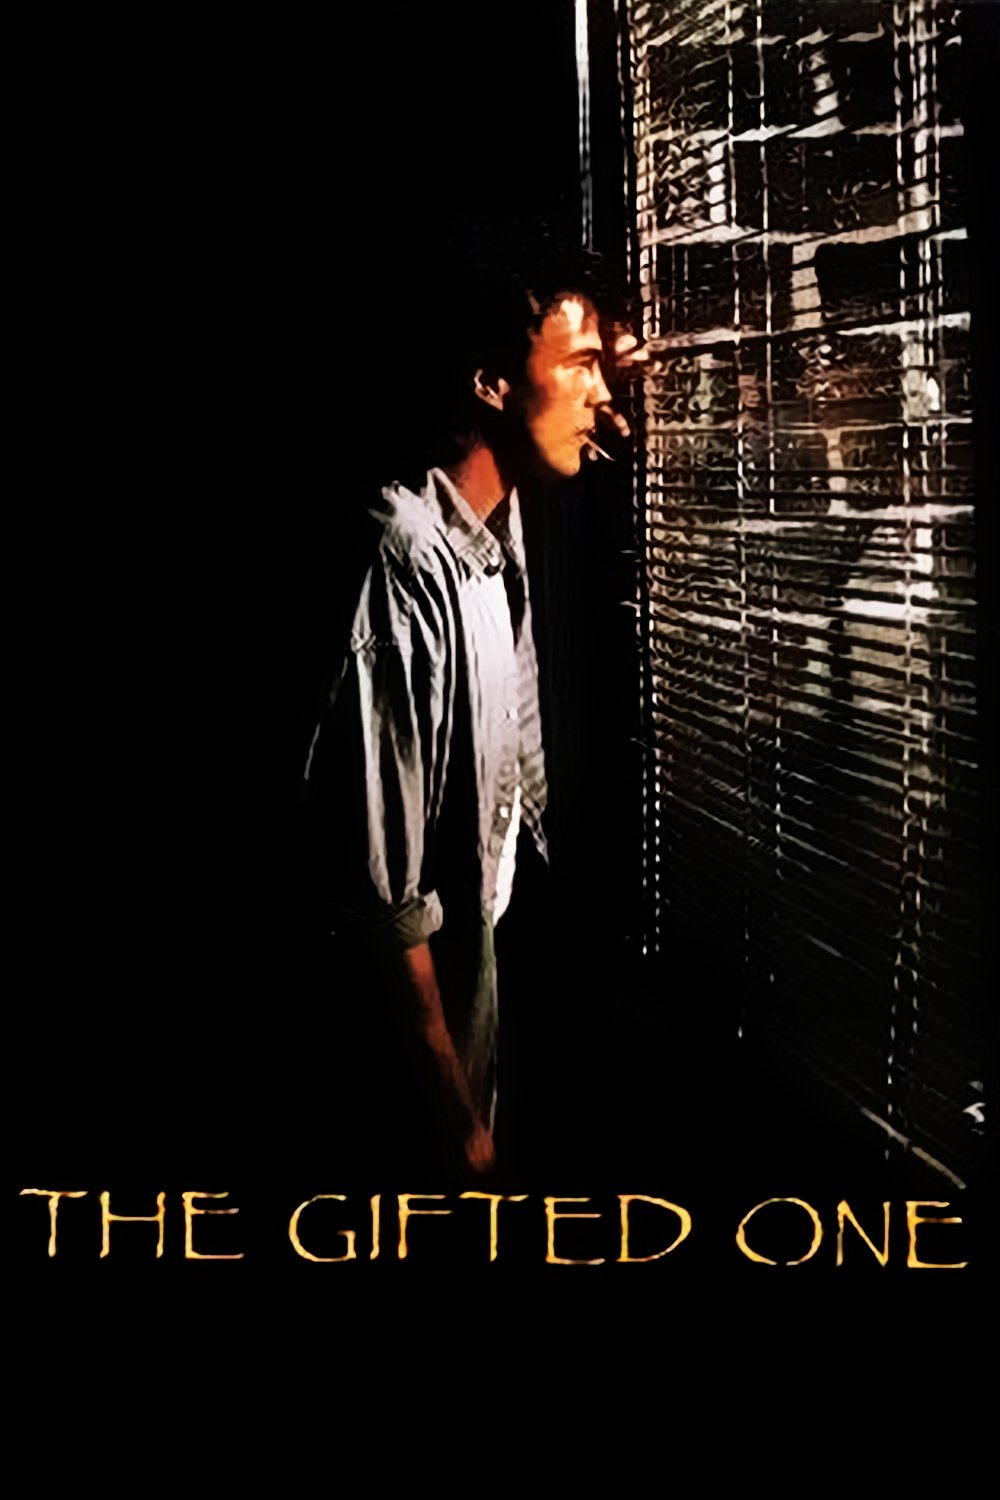 The Gifted One Dvd (1989)